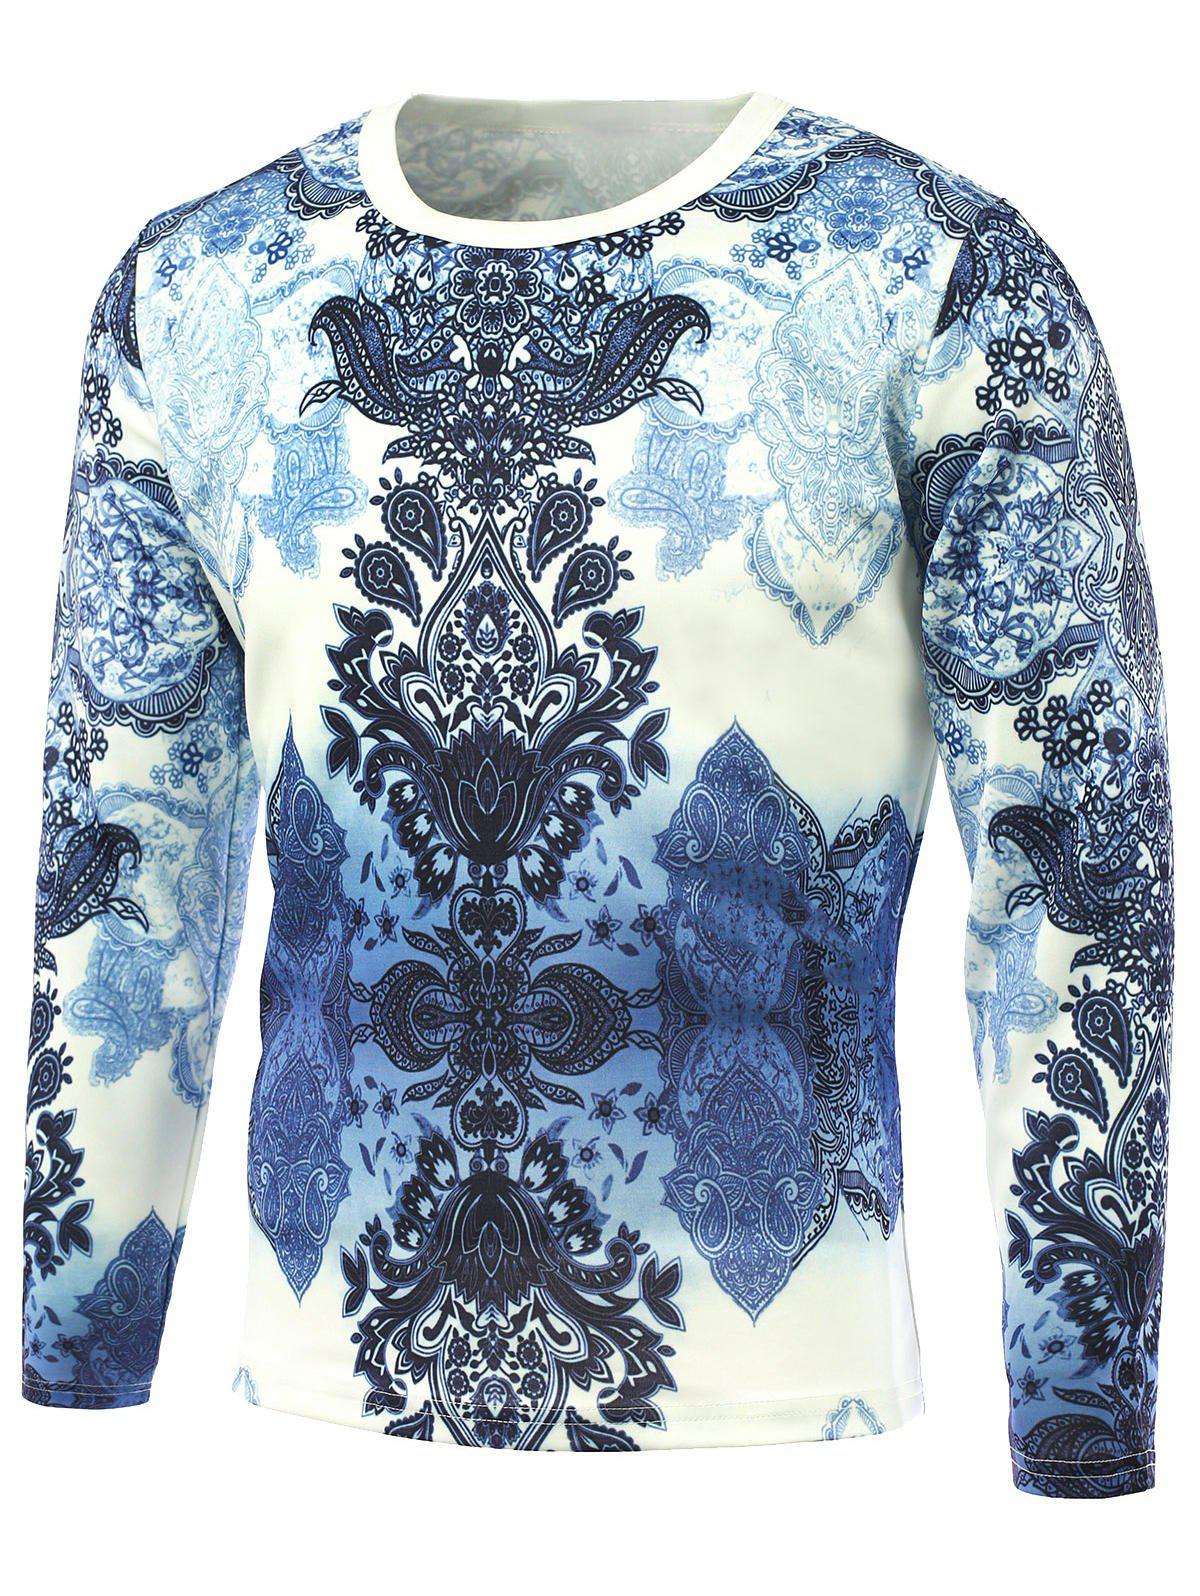 Long Sleeve Retro Flower Printed T-Shirt - BLUE 5XL